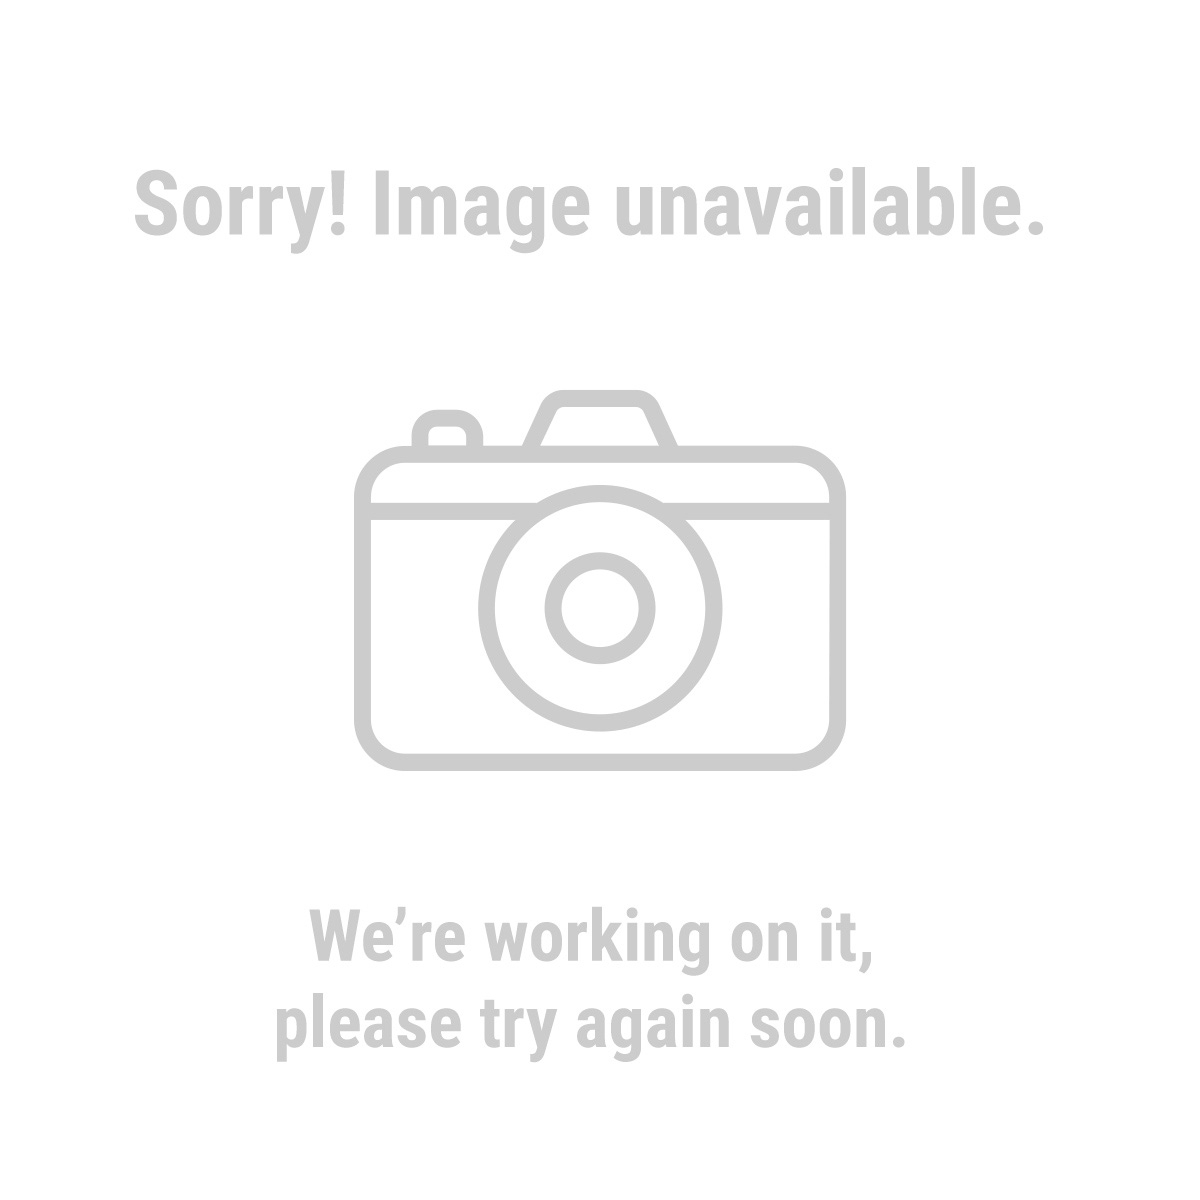 Warrior® 69973 7 Piece 150 Grit Emery Sheets